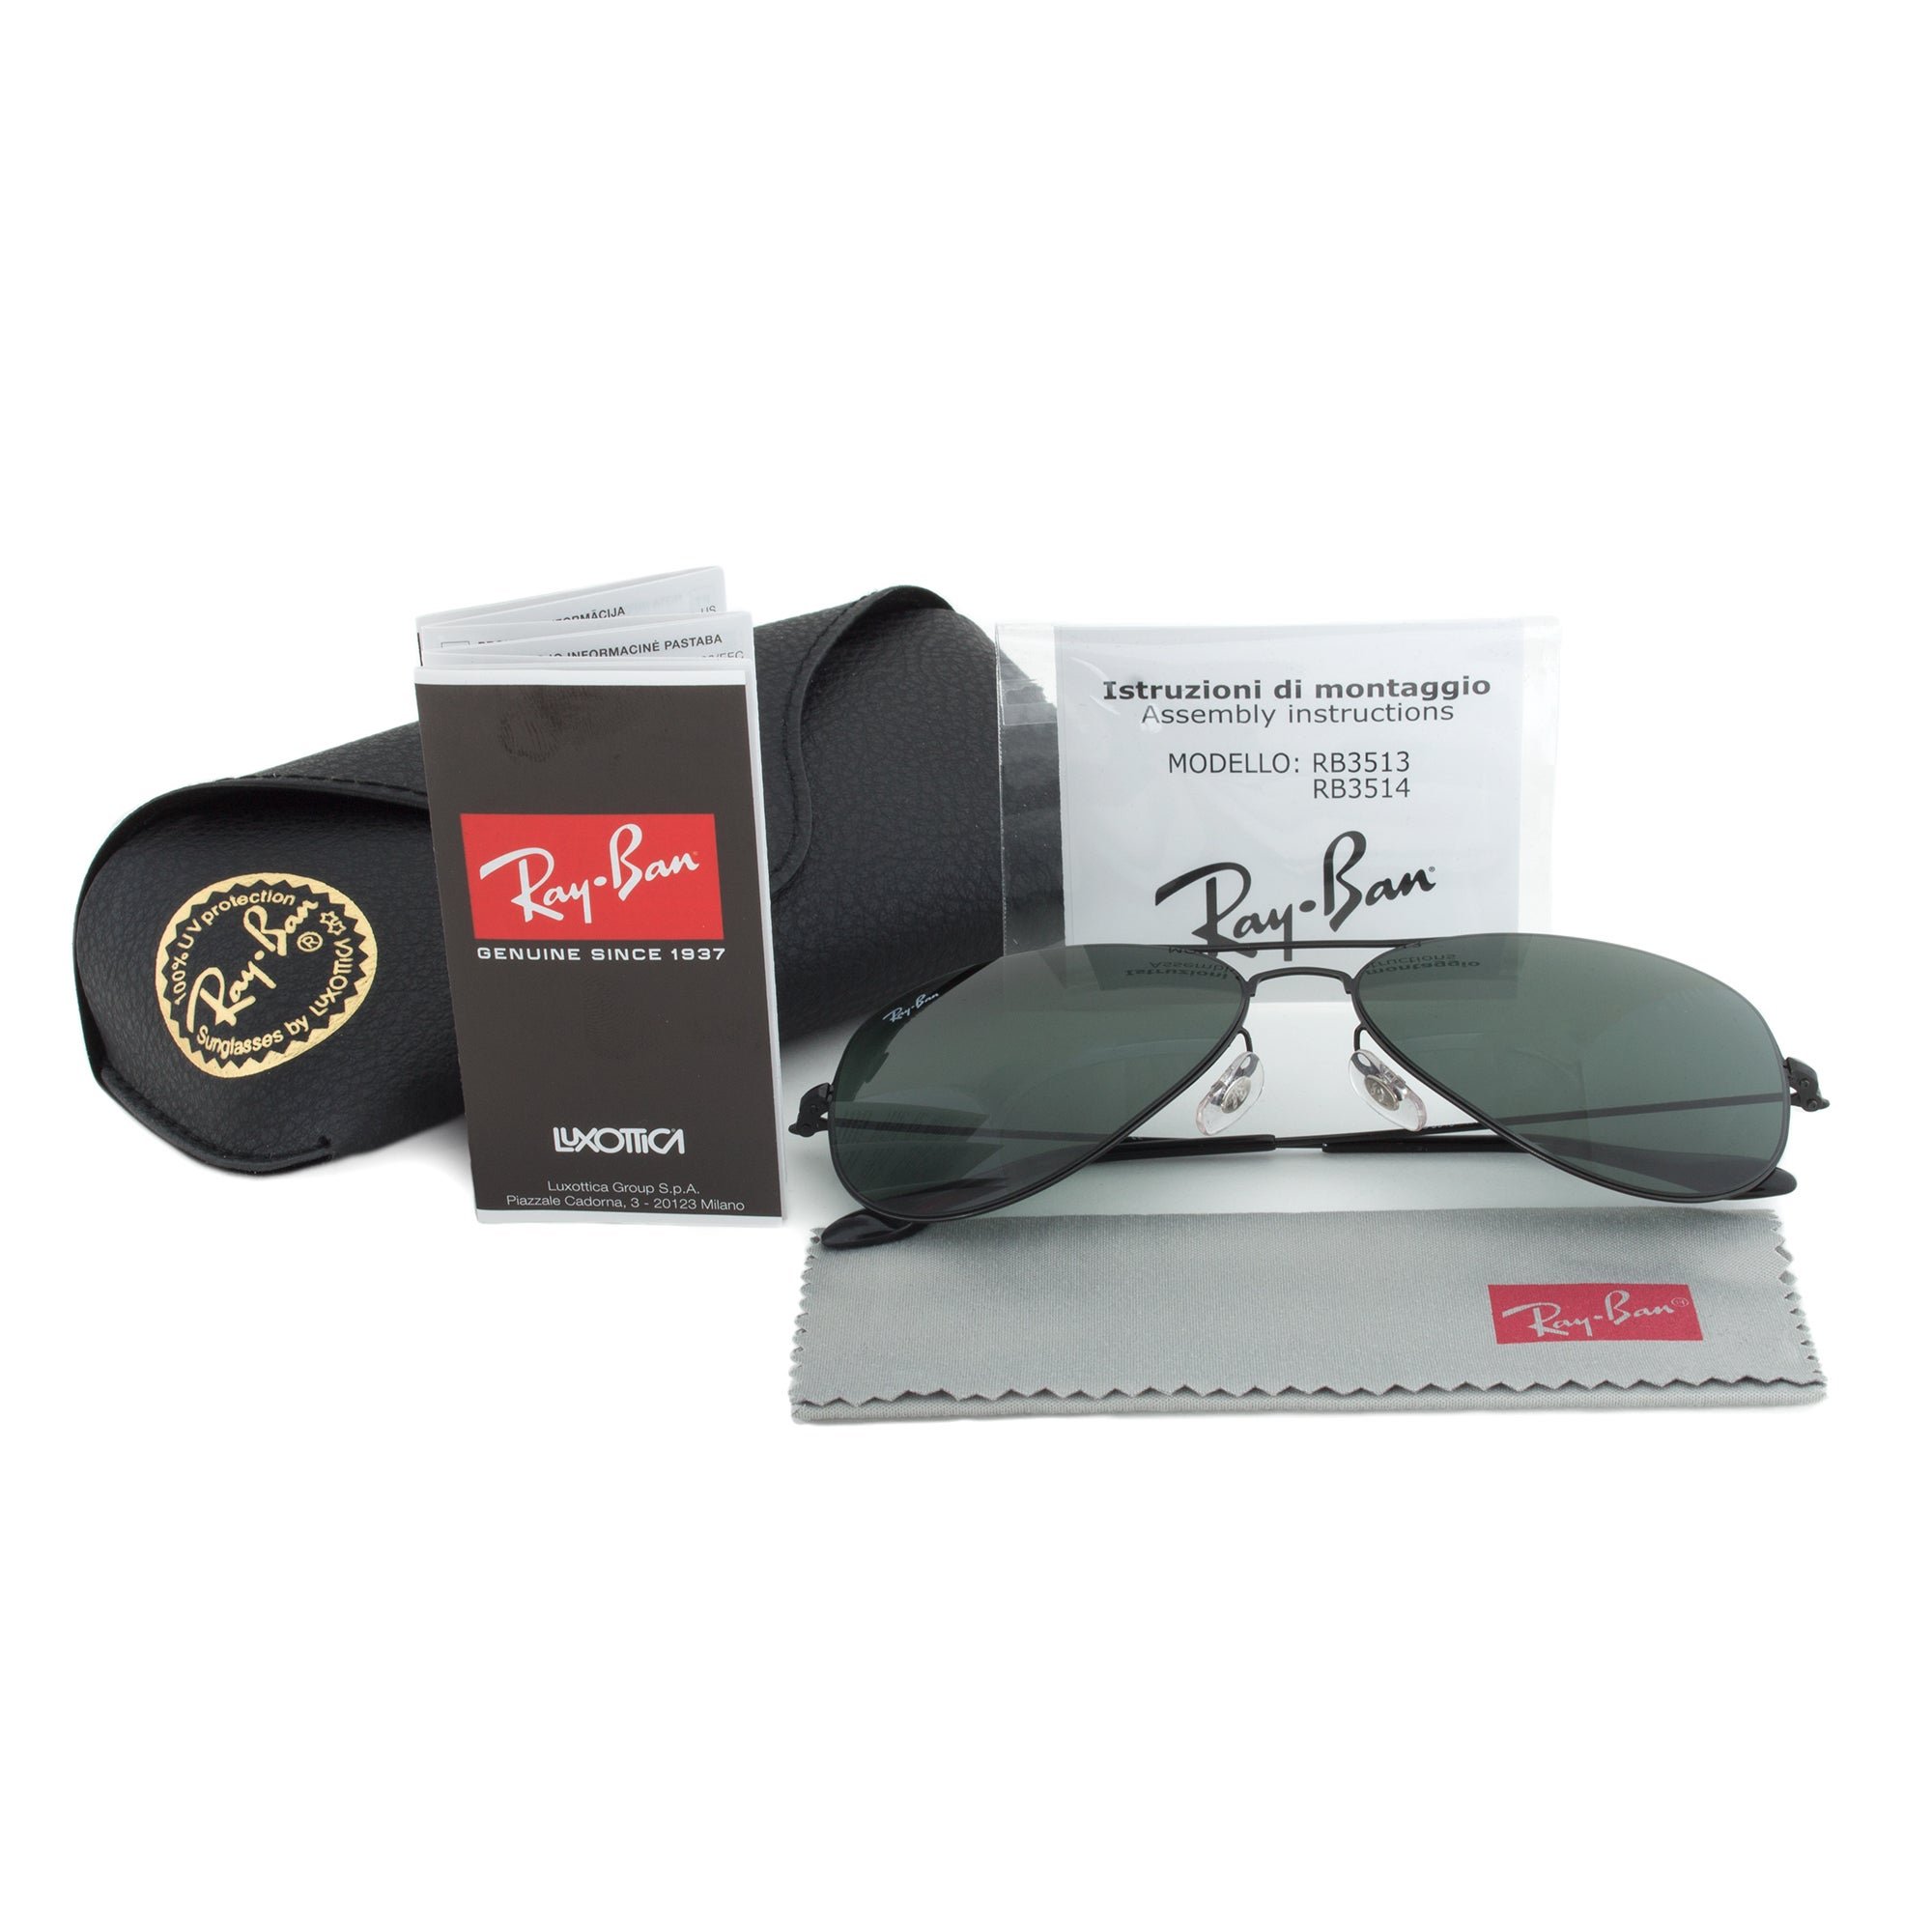 131f761bfd884 Shop Ray-Ban RB3513 153 71 Black Aviator Sunglasses - Free Shipping Today -  Overstock - 10478549